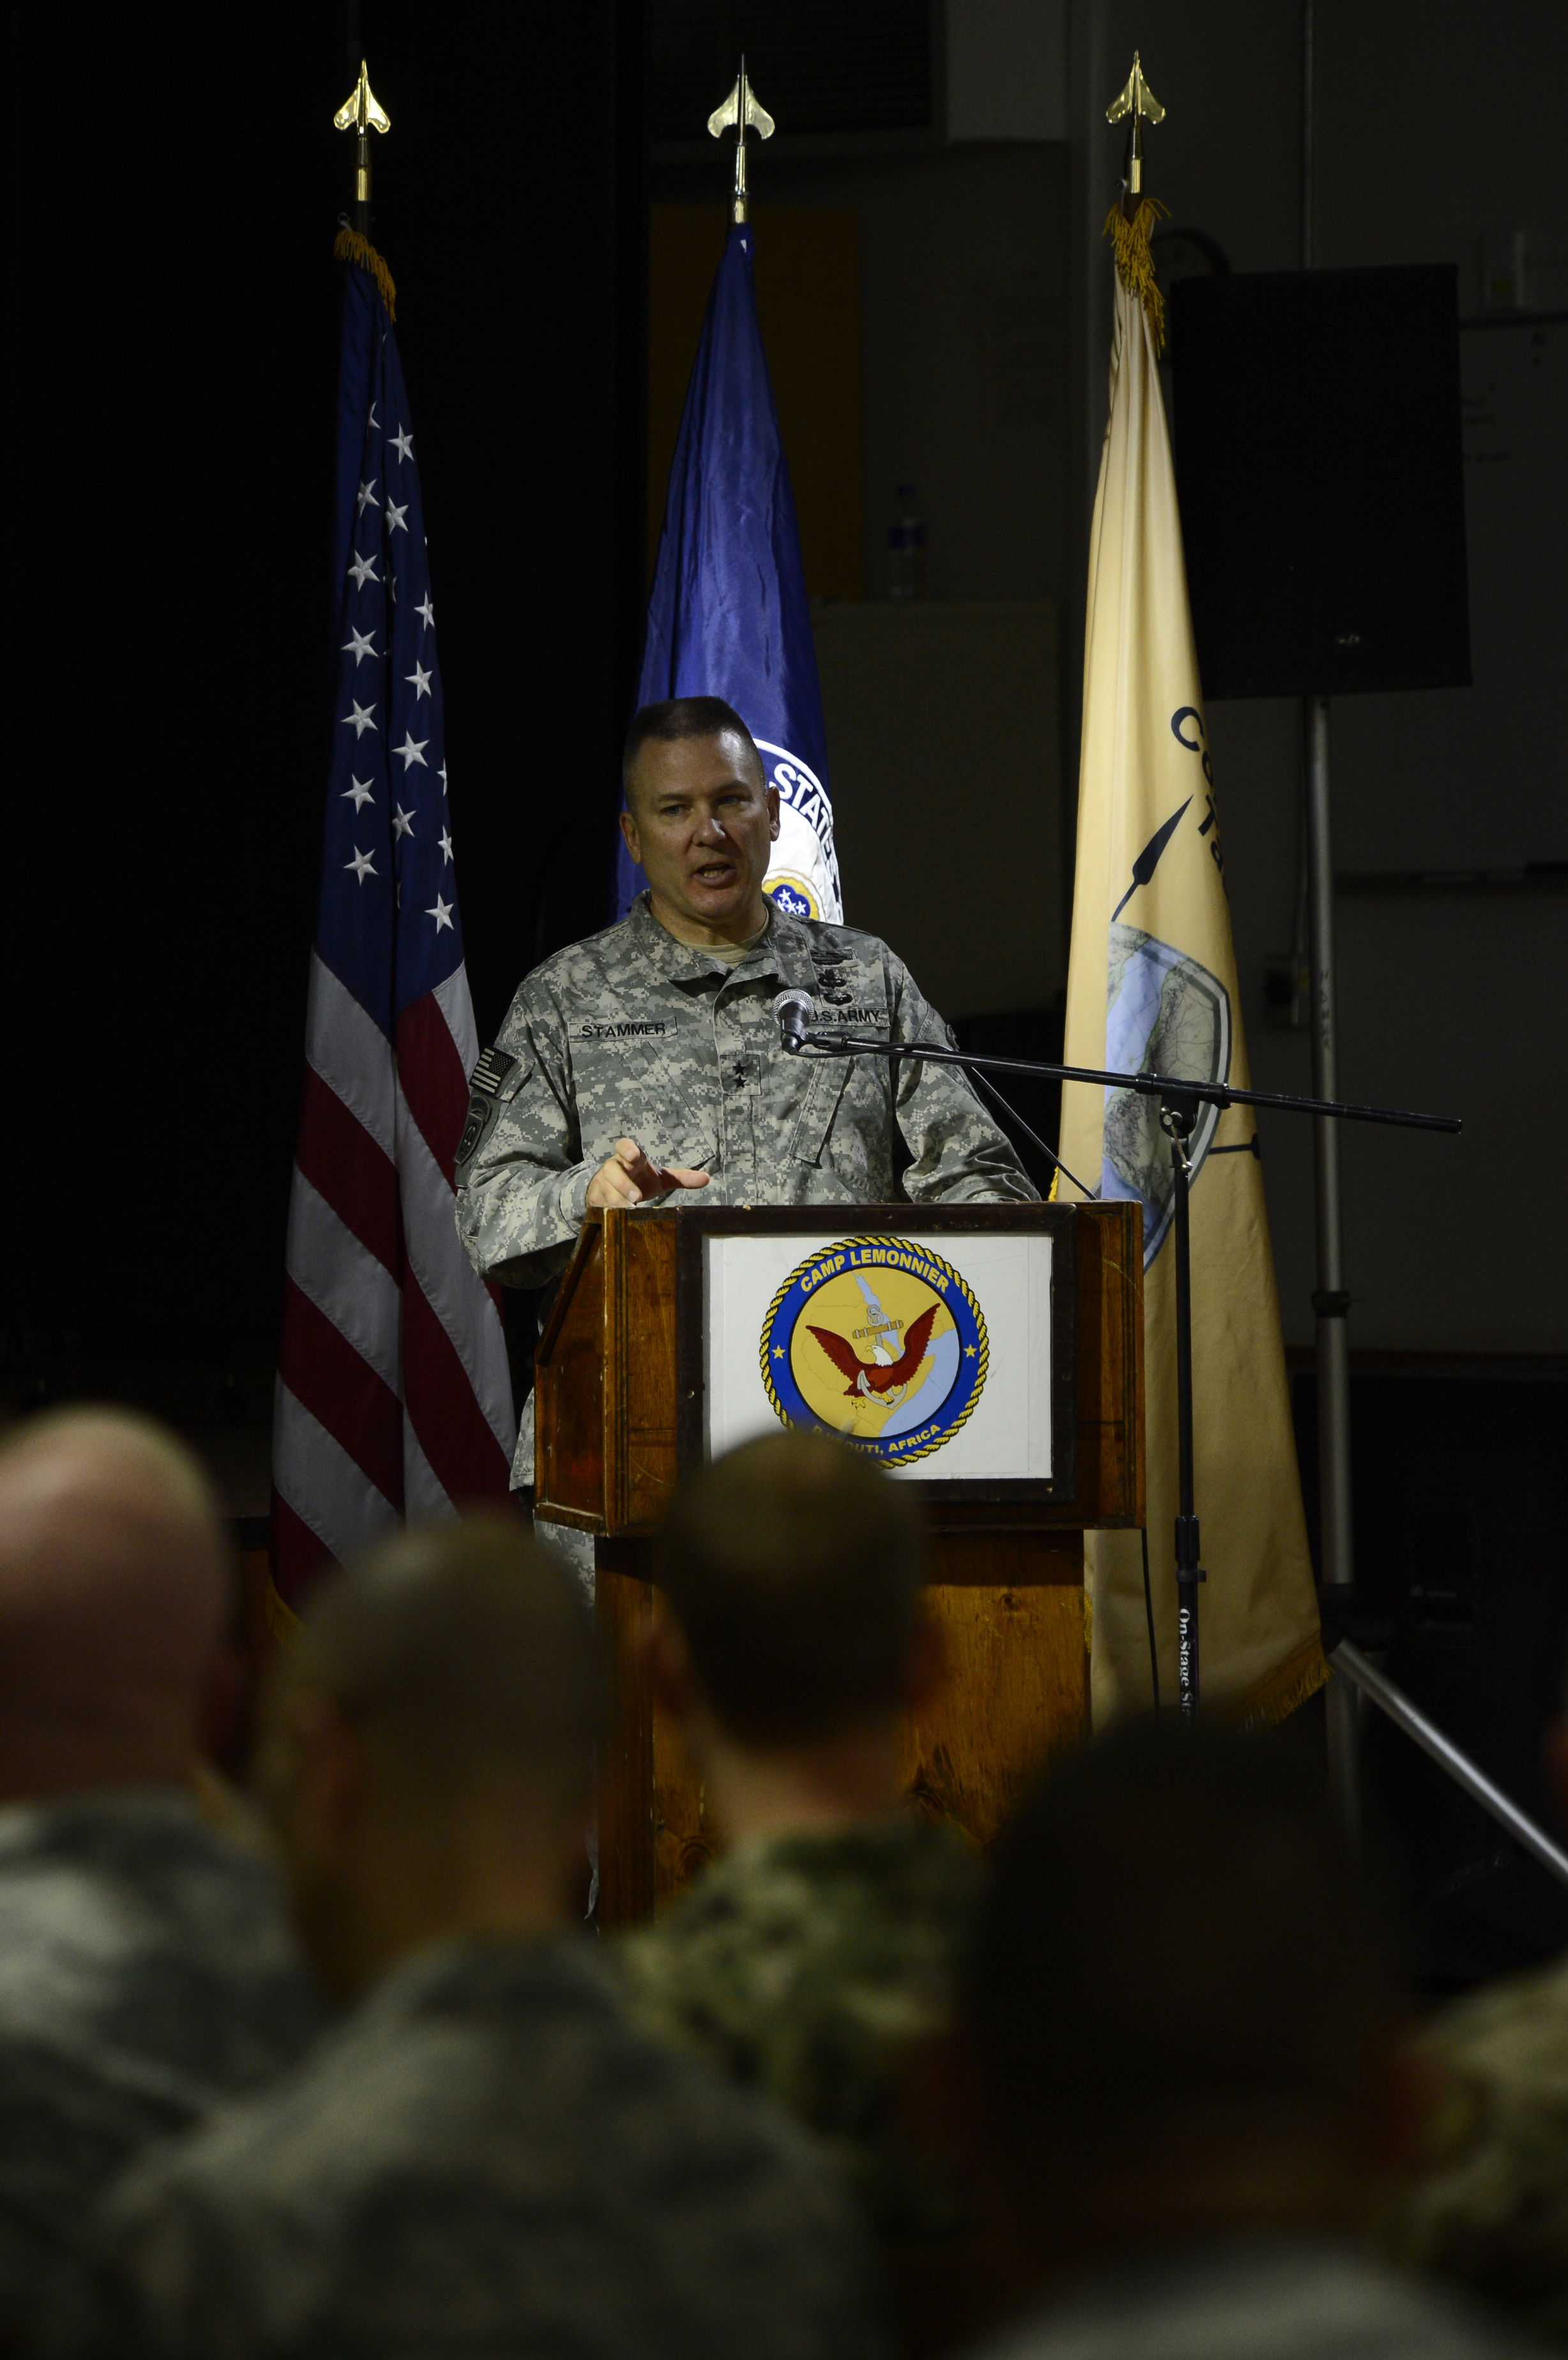 U.S. Army Maj. Gen. Mark Stammer, Combined Joint Task Force-Horn of Africa commanding general, welcomes attendees to the East Africa Security Synchronization Conference Jan. 20, 2016, at Camp Lemonnier, Djibouti. The EASSC is the only conference between U.S. Department of State and U.S. military representatives dedicated to aligning military and political priorities for East Africa. (U.S. Air Force photo by Senior Airman Peter Thompson)